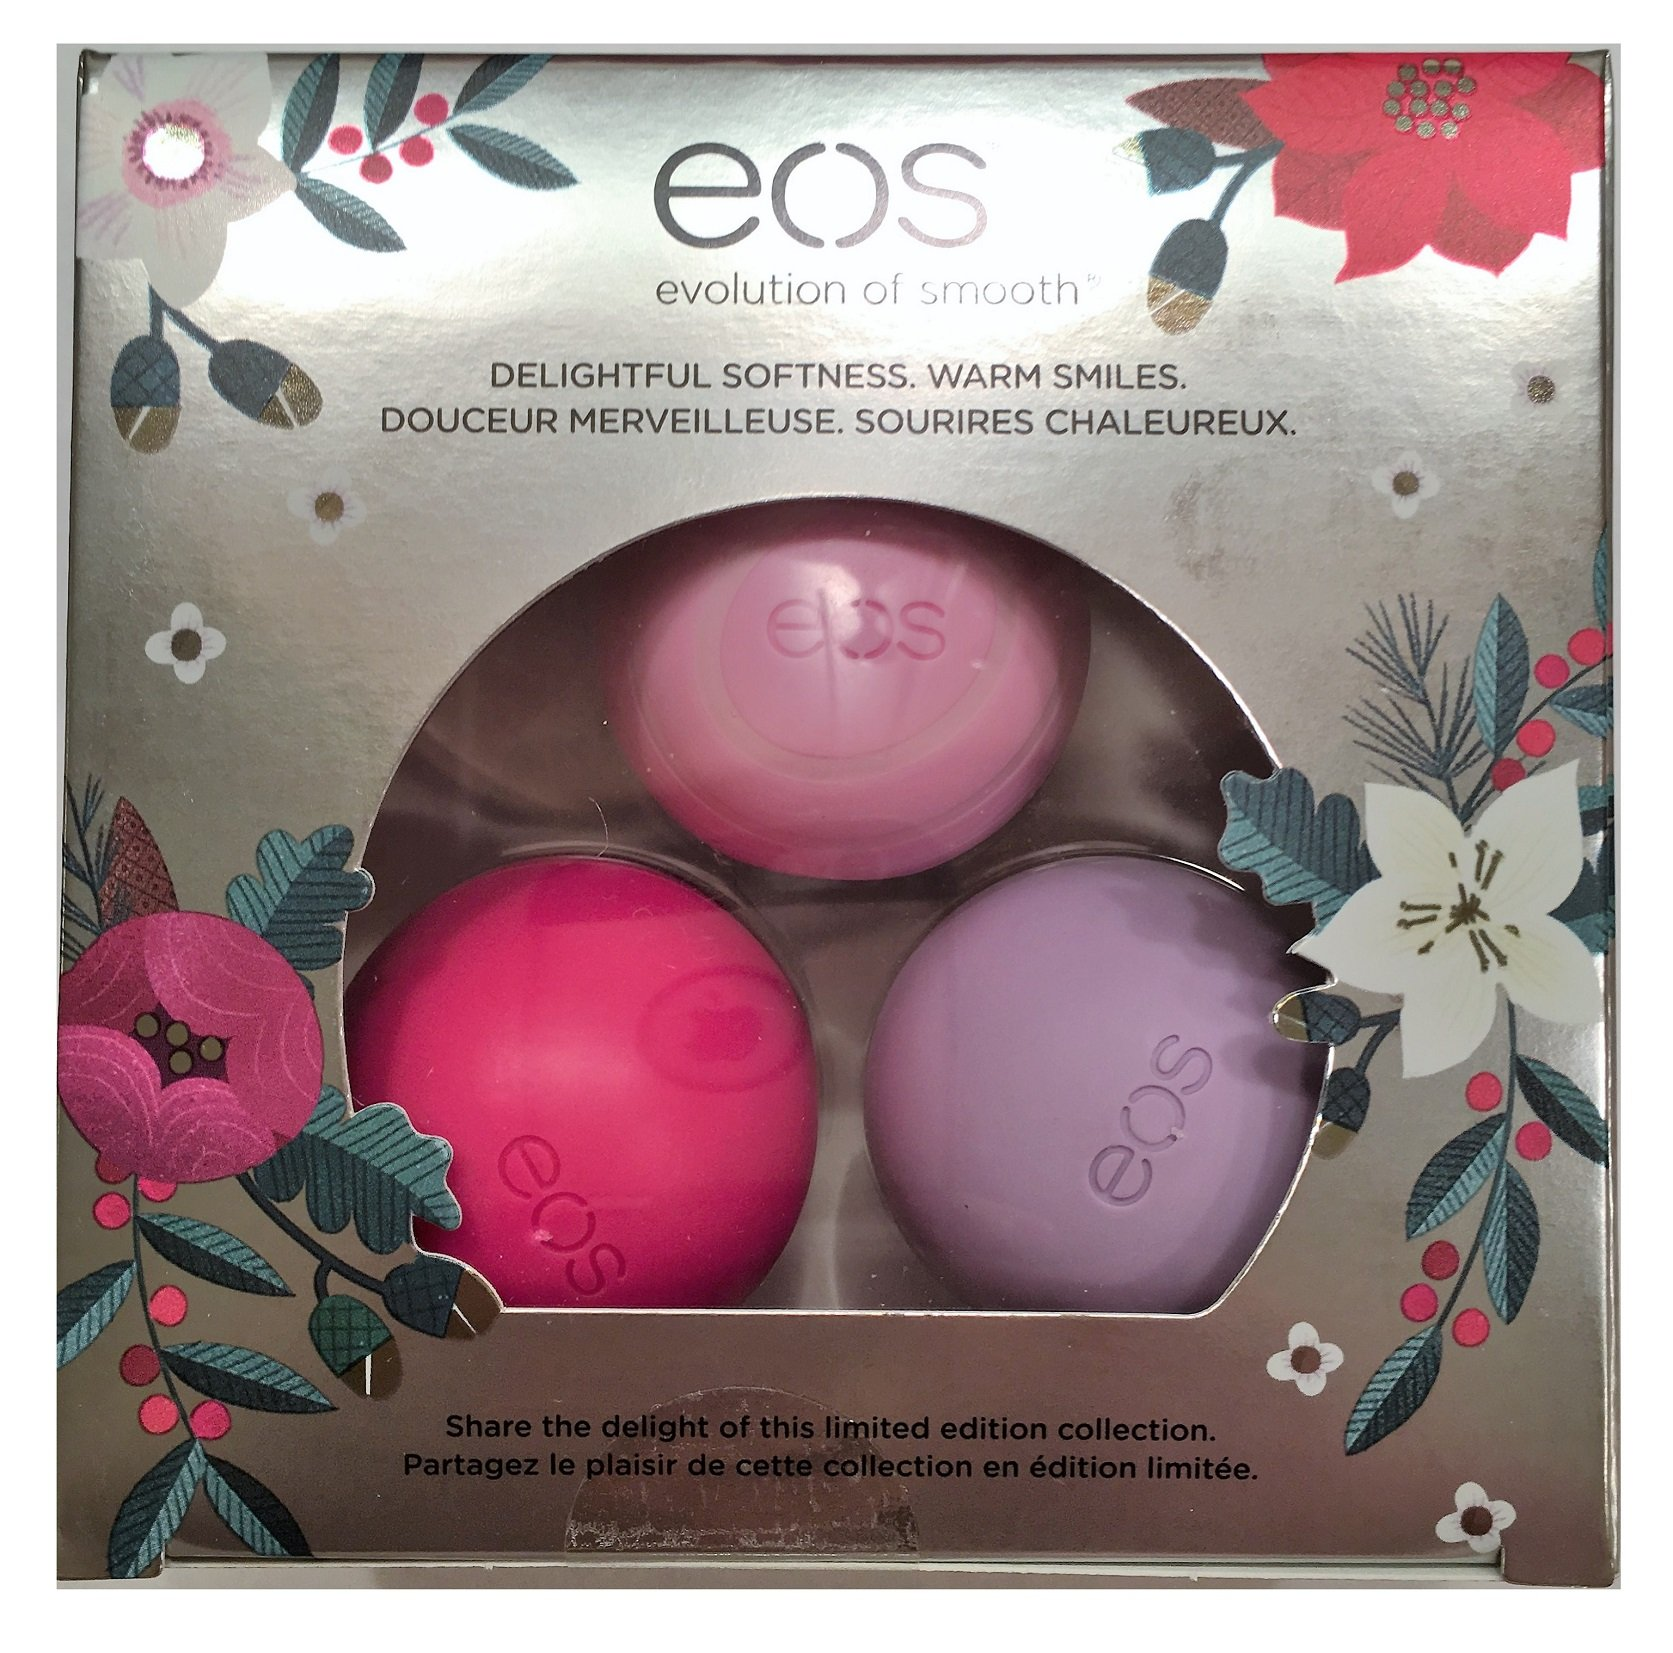 EOS-cosmetics: a delight for the lips